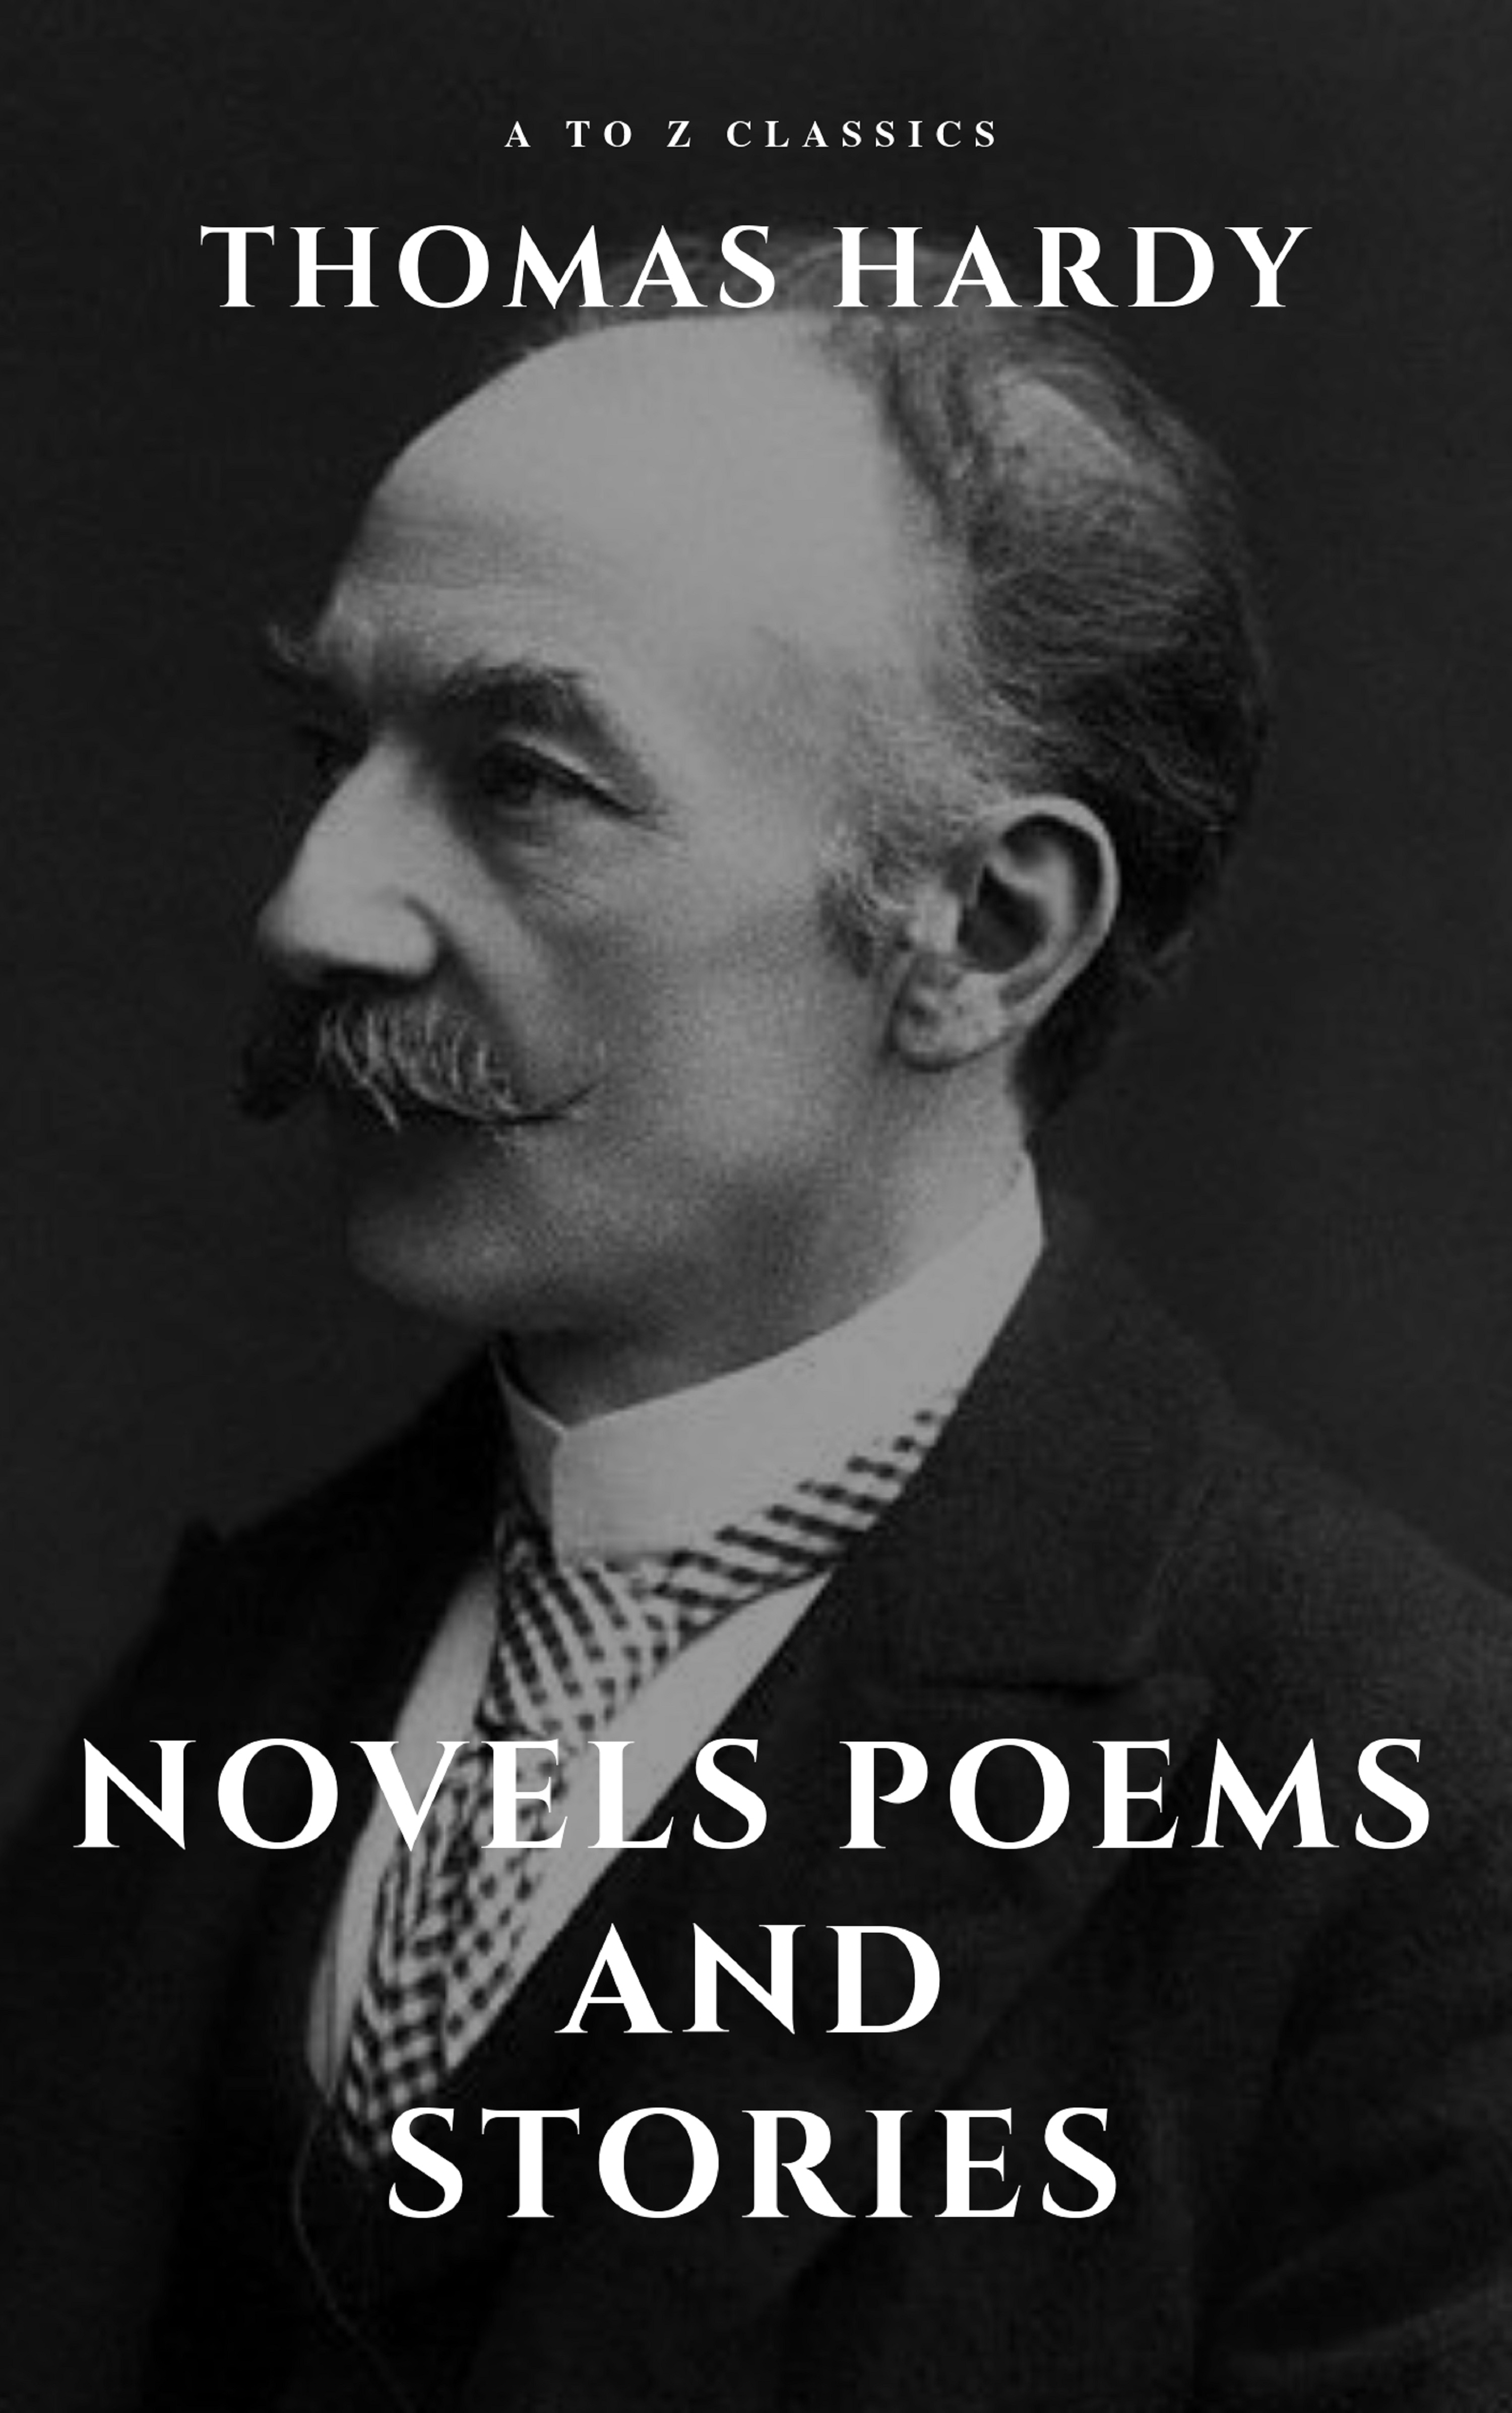 thomas hardy novels poems and stories